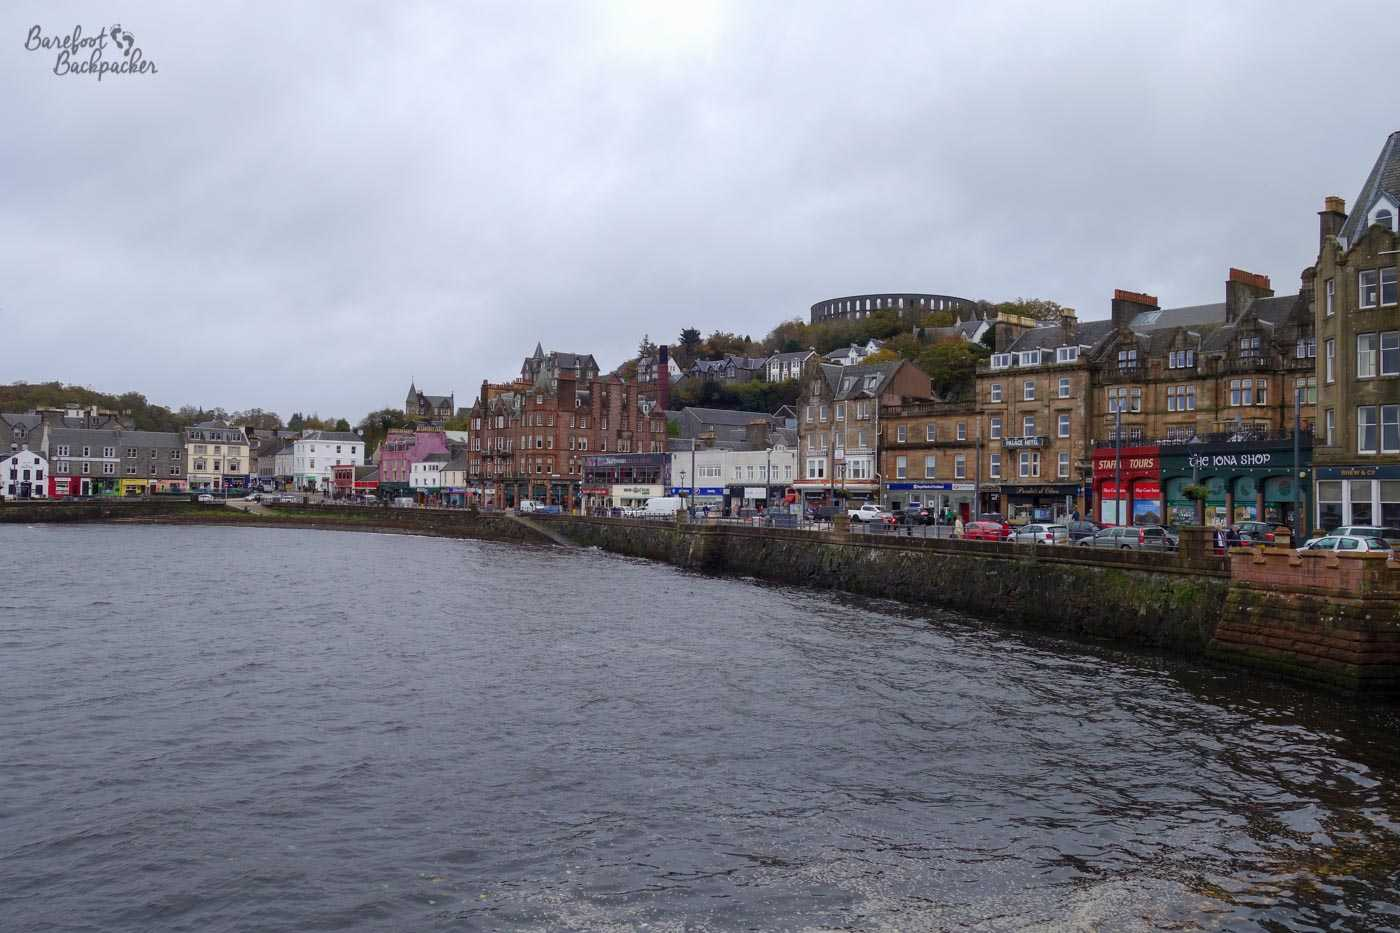 The waterfront at Oban. The water in the bay brushes against a brick sea wall, behind which is a road lined with brick buildings three of four storeys high. The land rises to the back and there's a weird circular structure with arches in the background at the top of the hill.